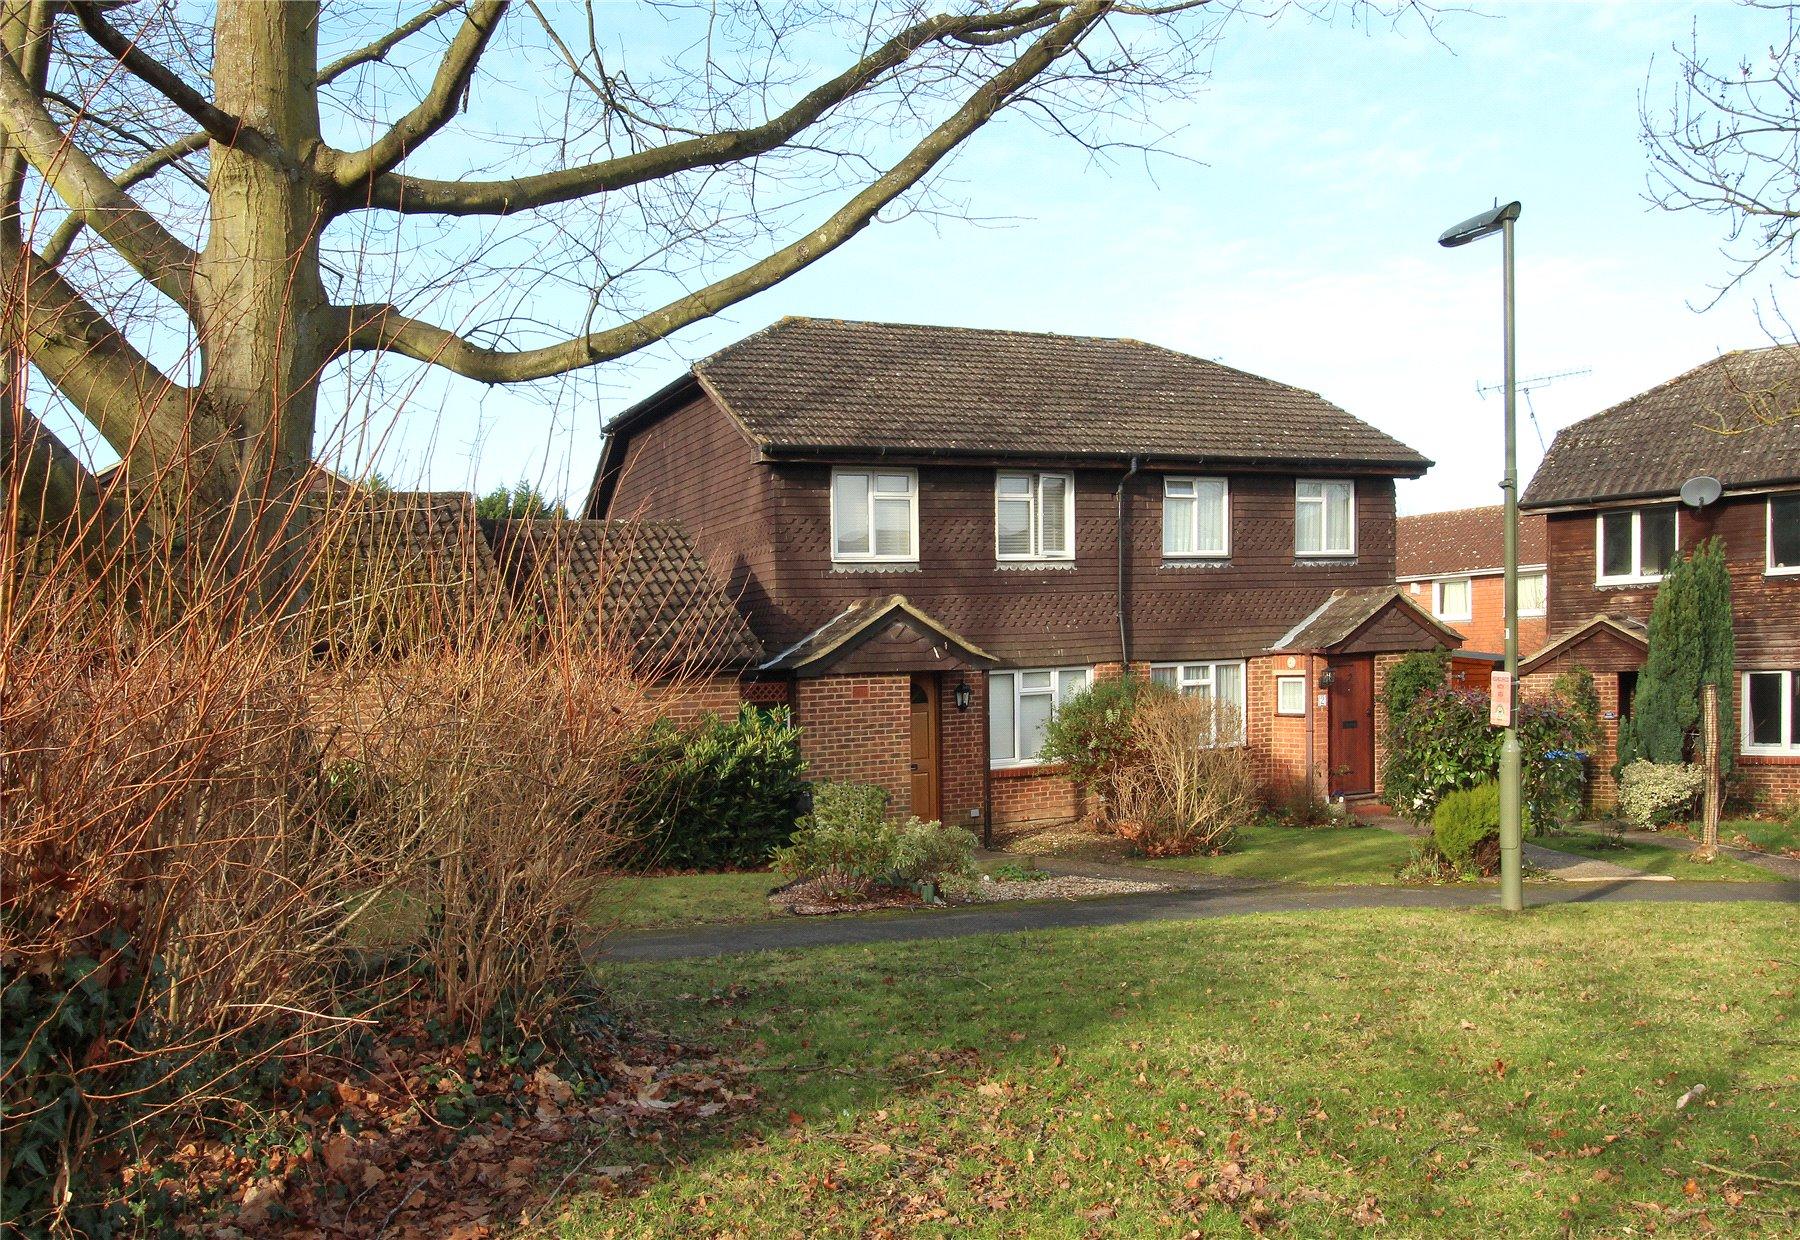 3 Bedrooms Semi Detached House for sale in Stainton Walk, Woking, Surrey, GU21